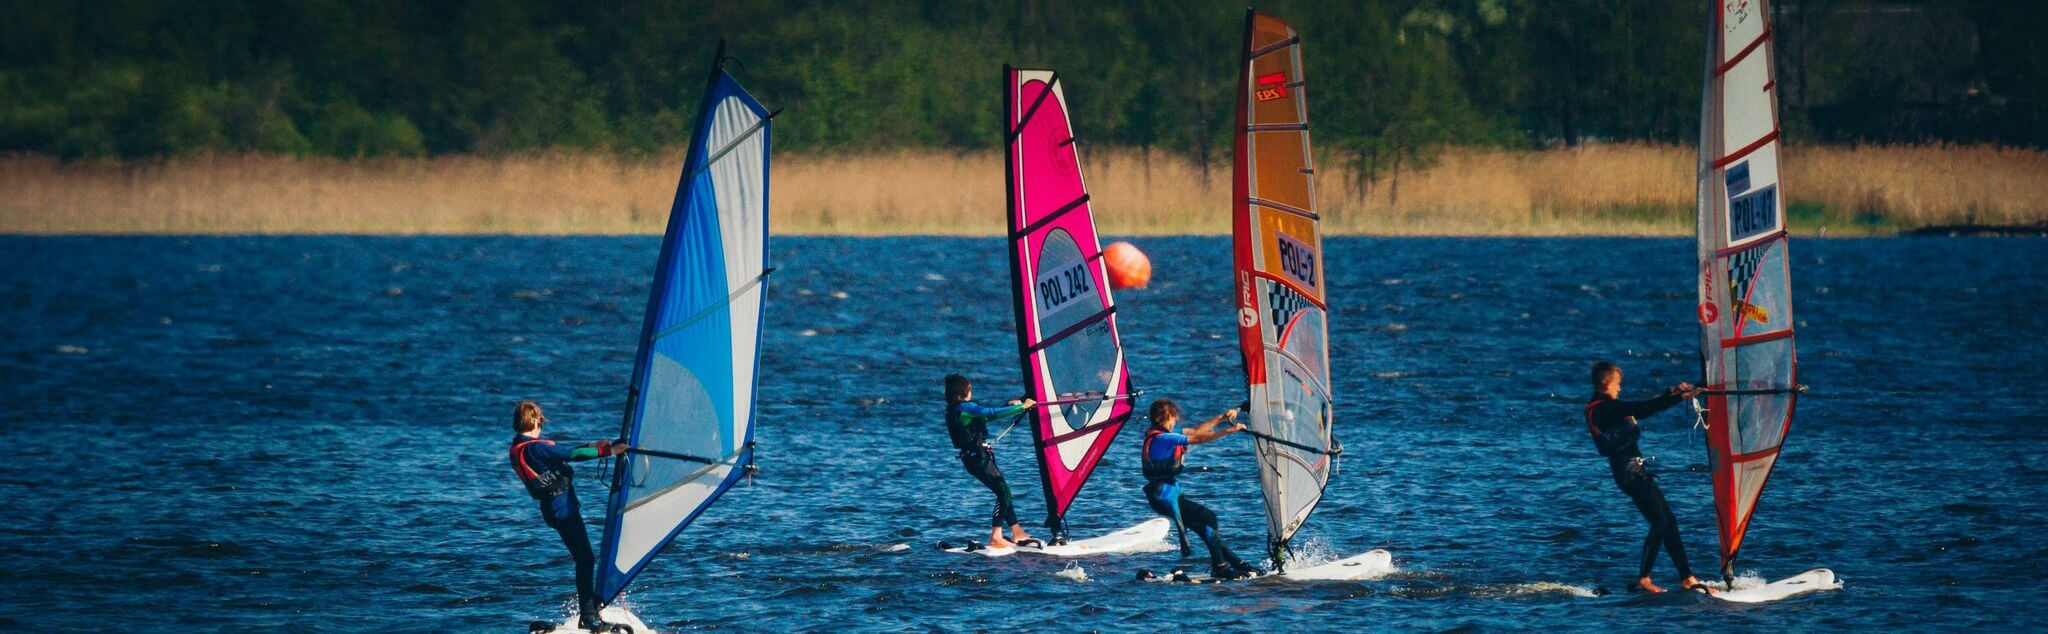 Windsurfing in Suffolk